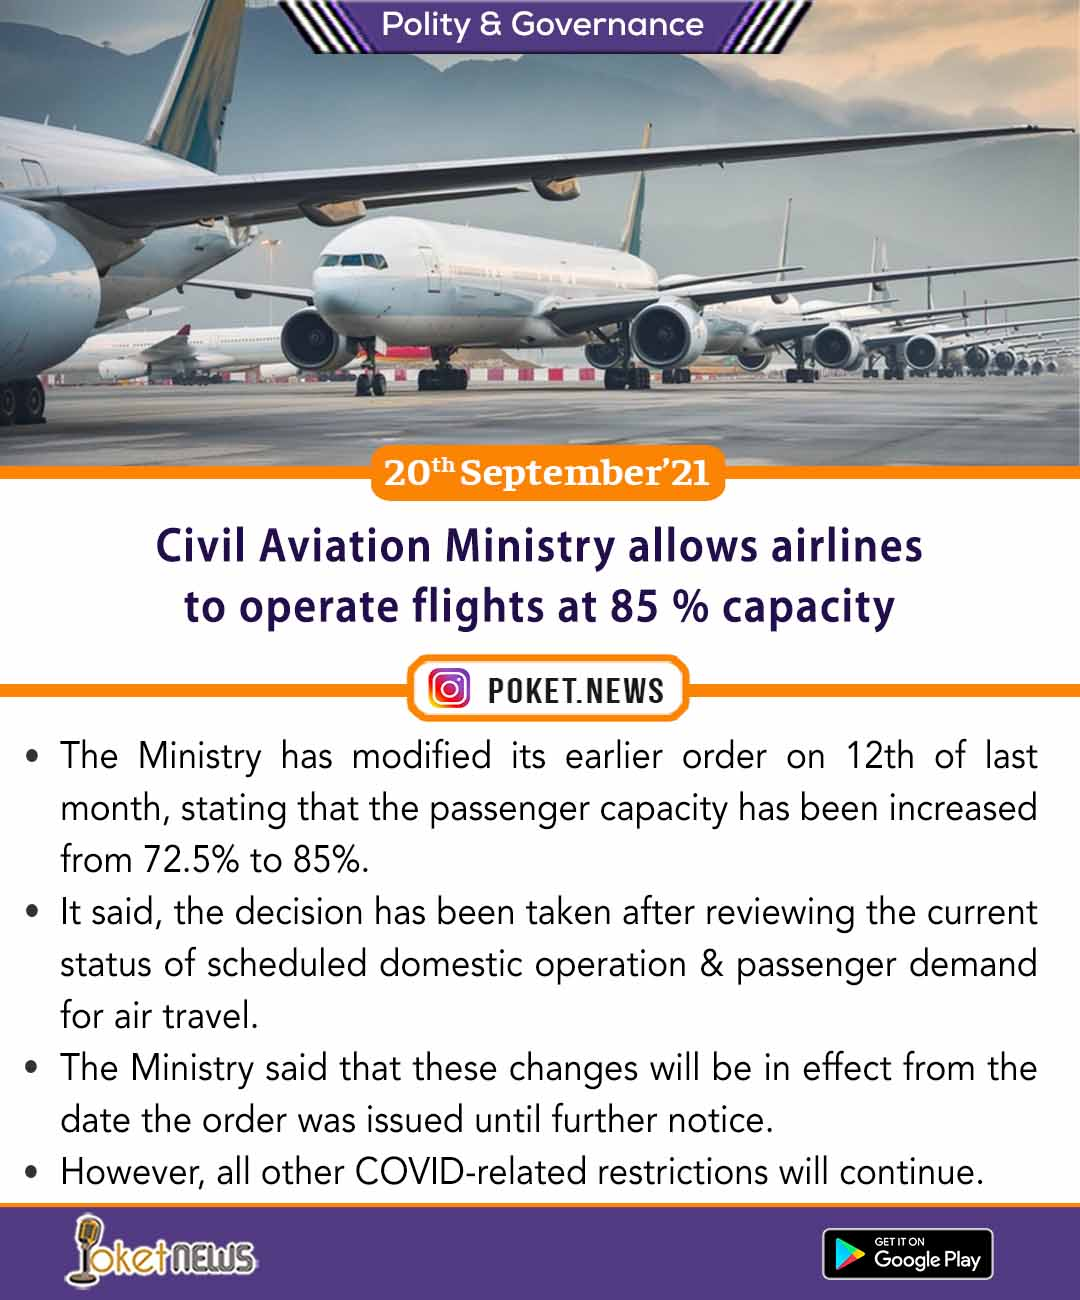 Civil Aviation Ministry allows airlines to operate flights at 85 % capacity